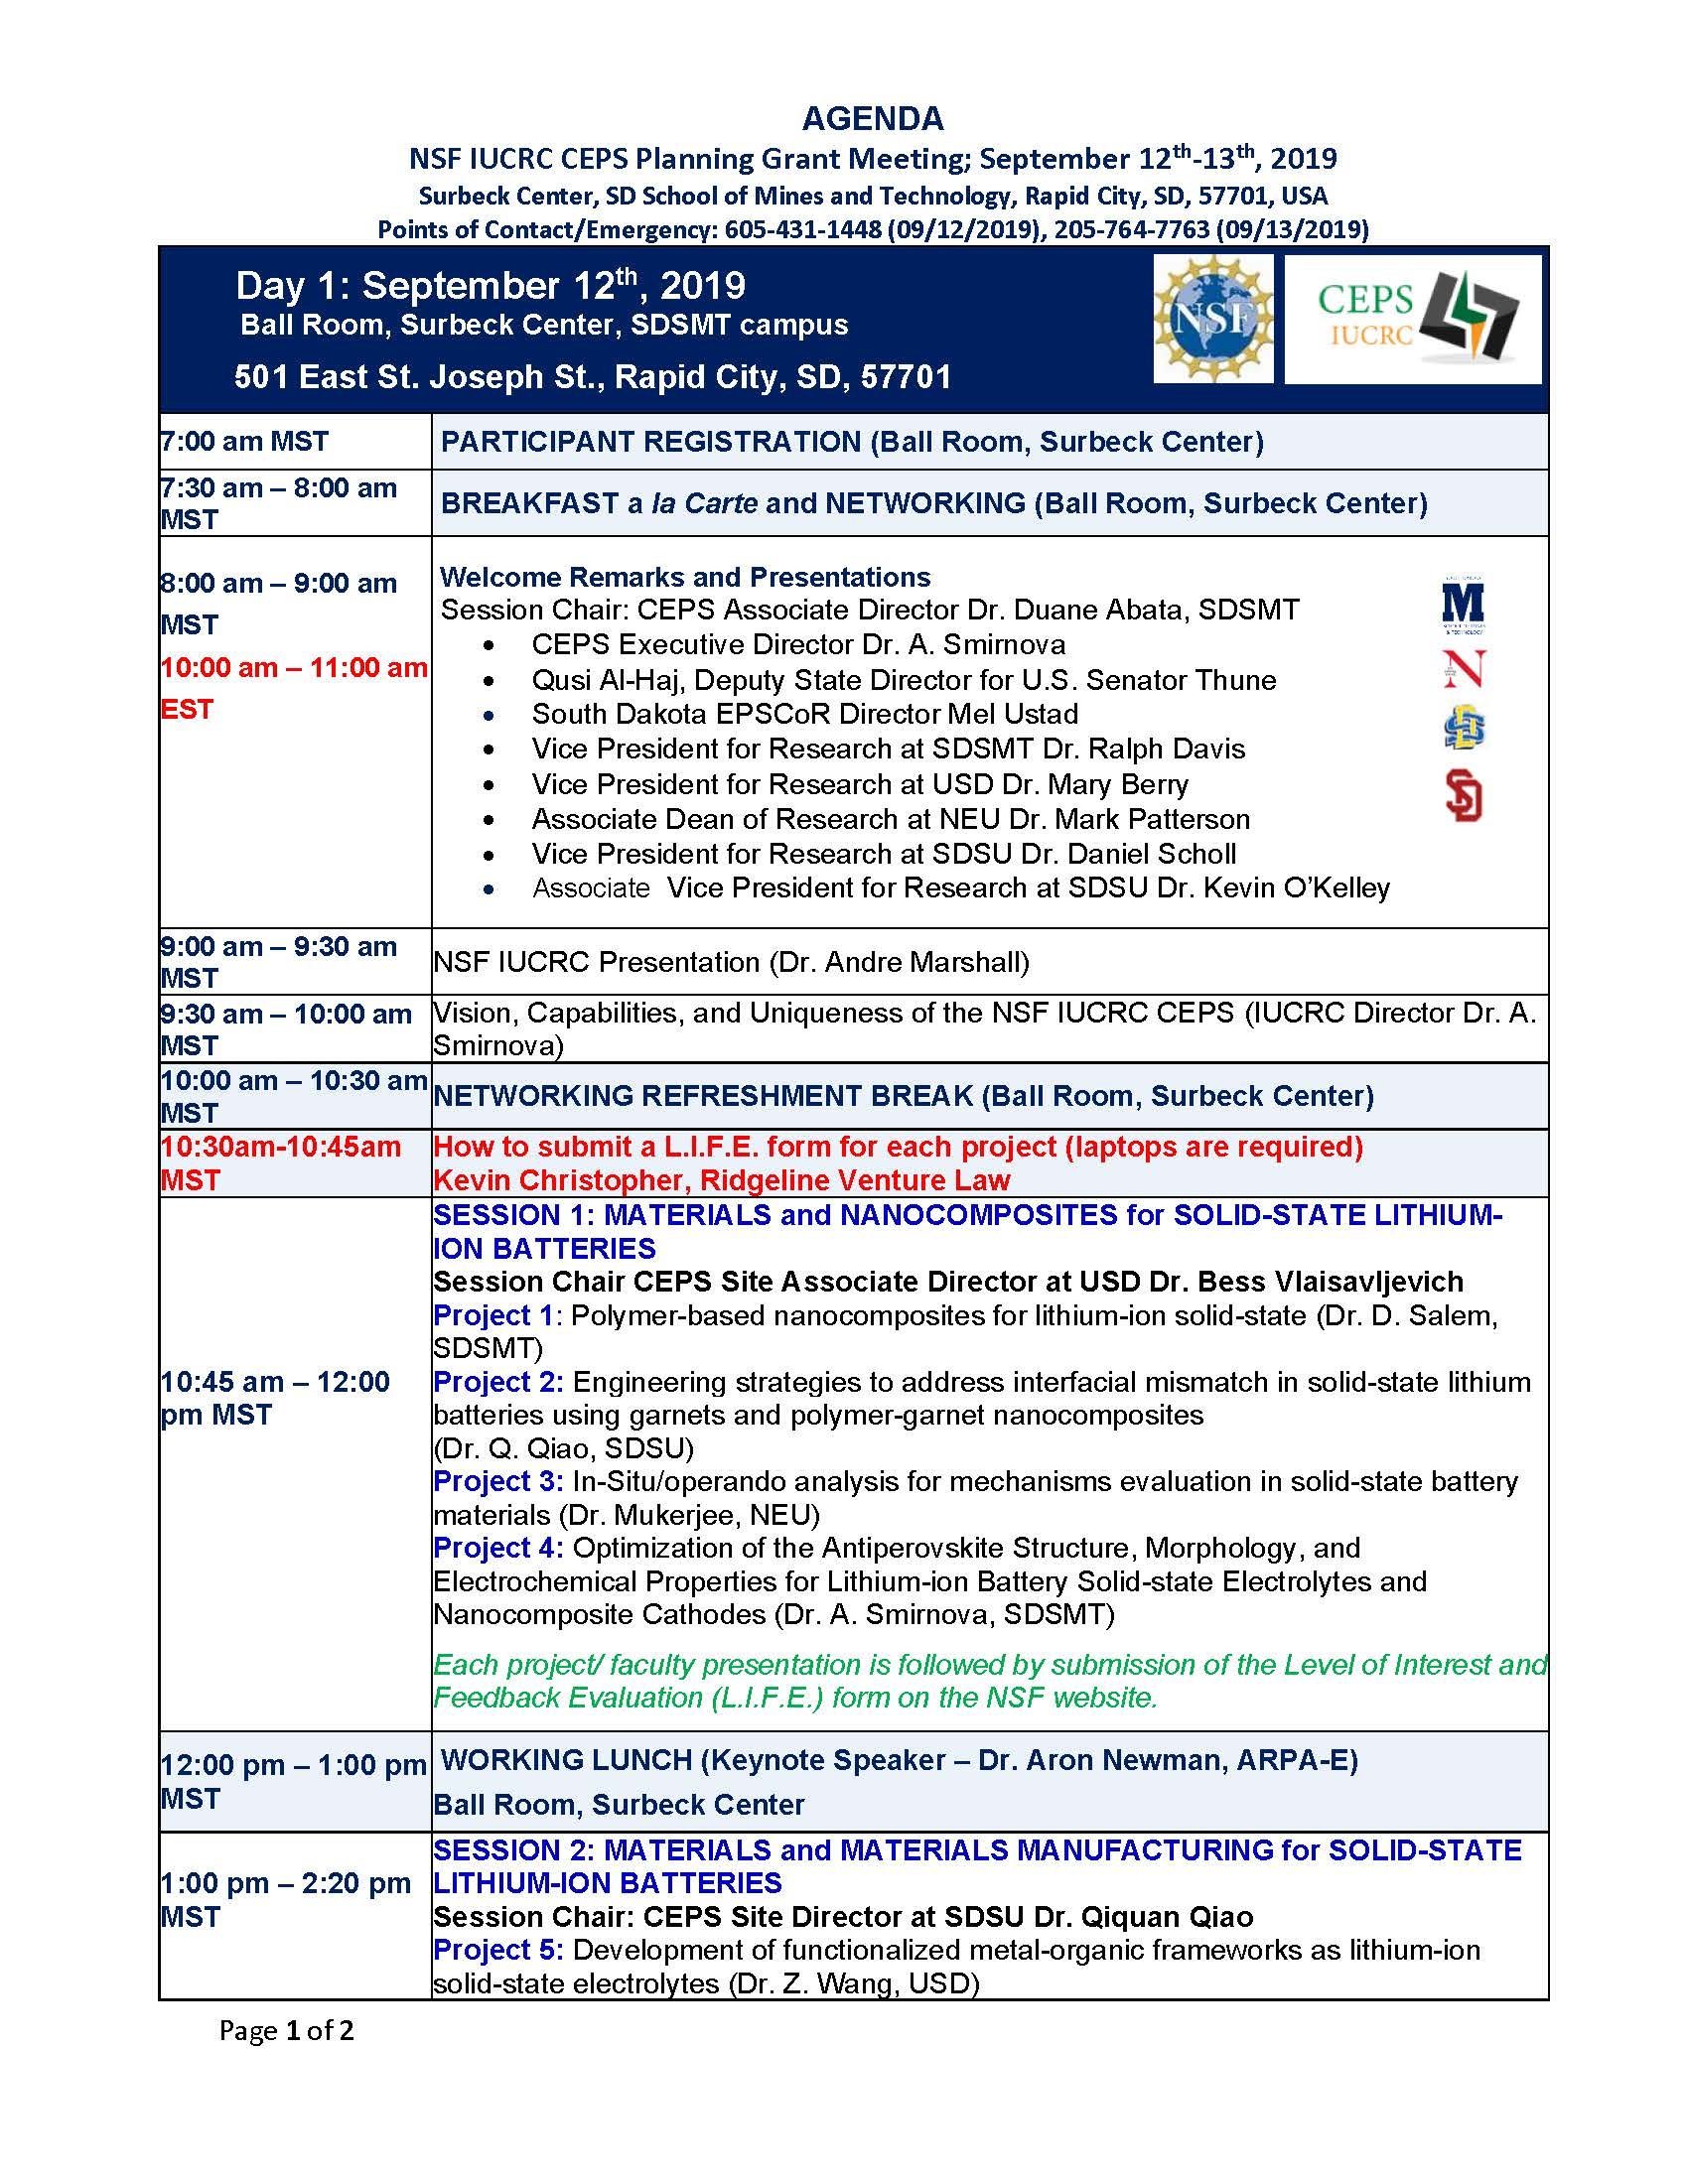 Planning grant meeting agenda- SEPTEMBER 12th-13th_Page_1.jpg